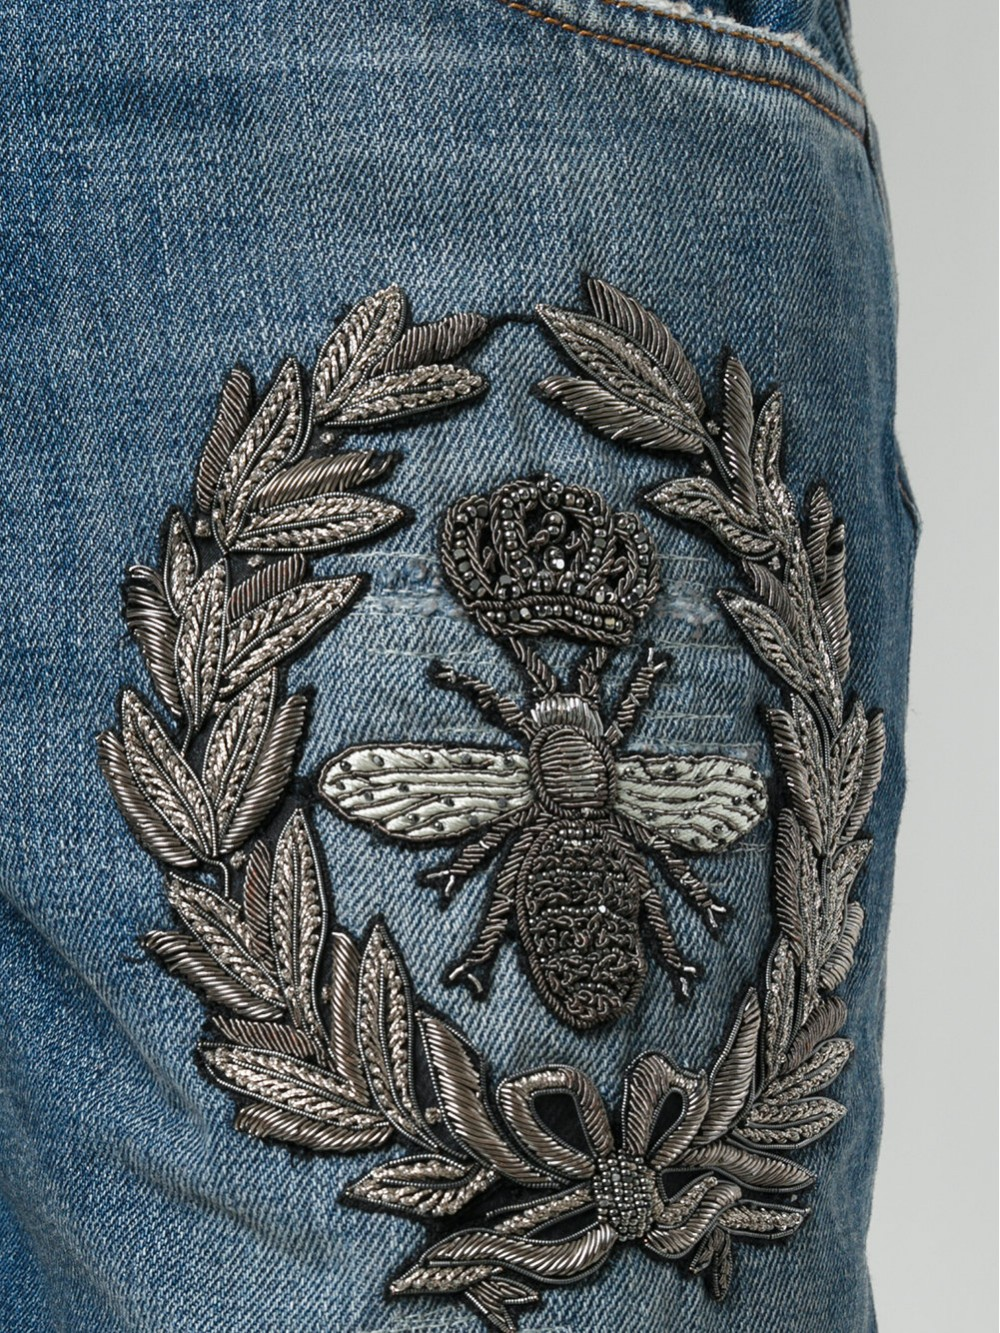 Dolce & Gabbana Crown & Bee Embroidered Jeans